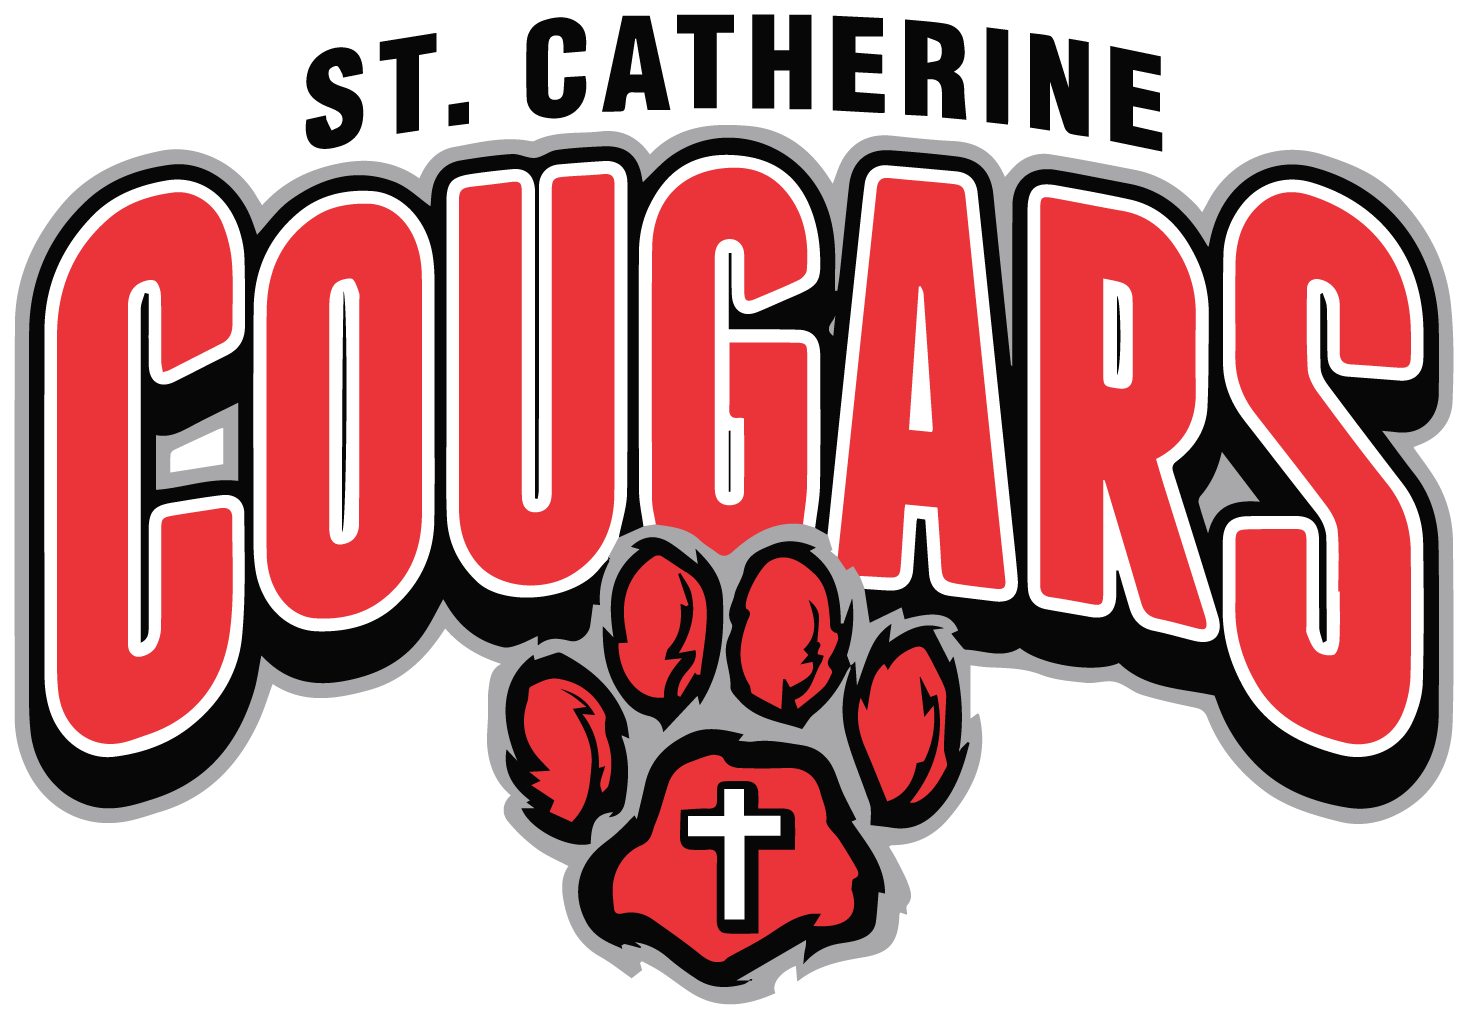 St. Catherine Community School logo